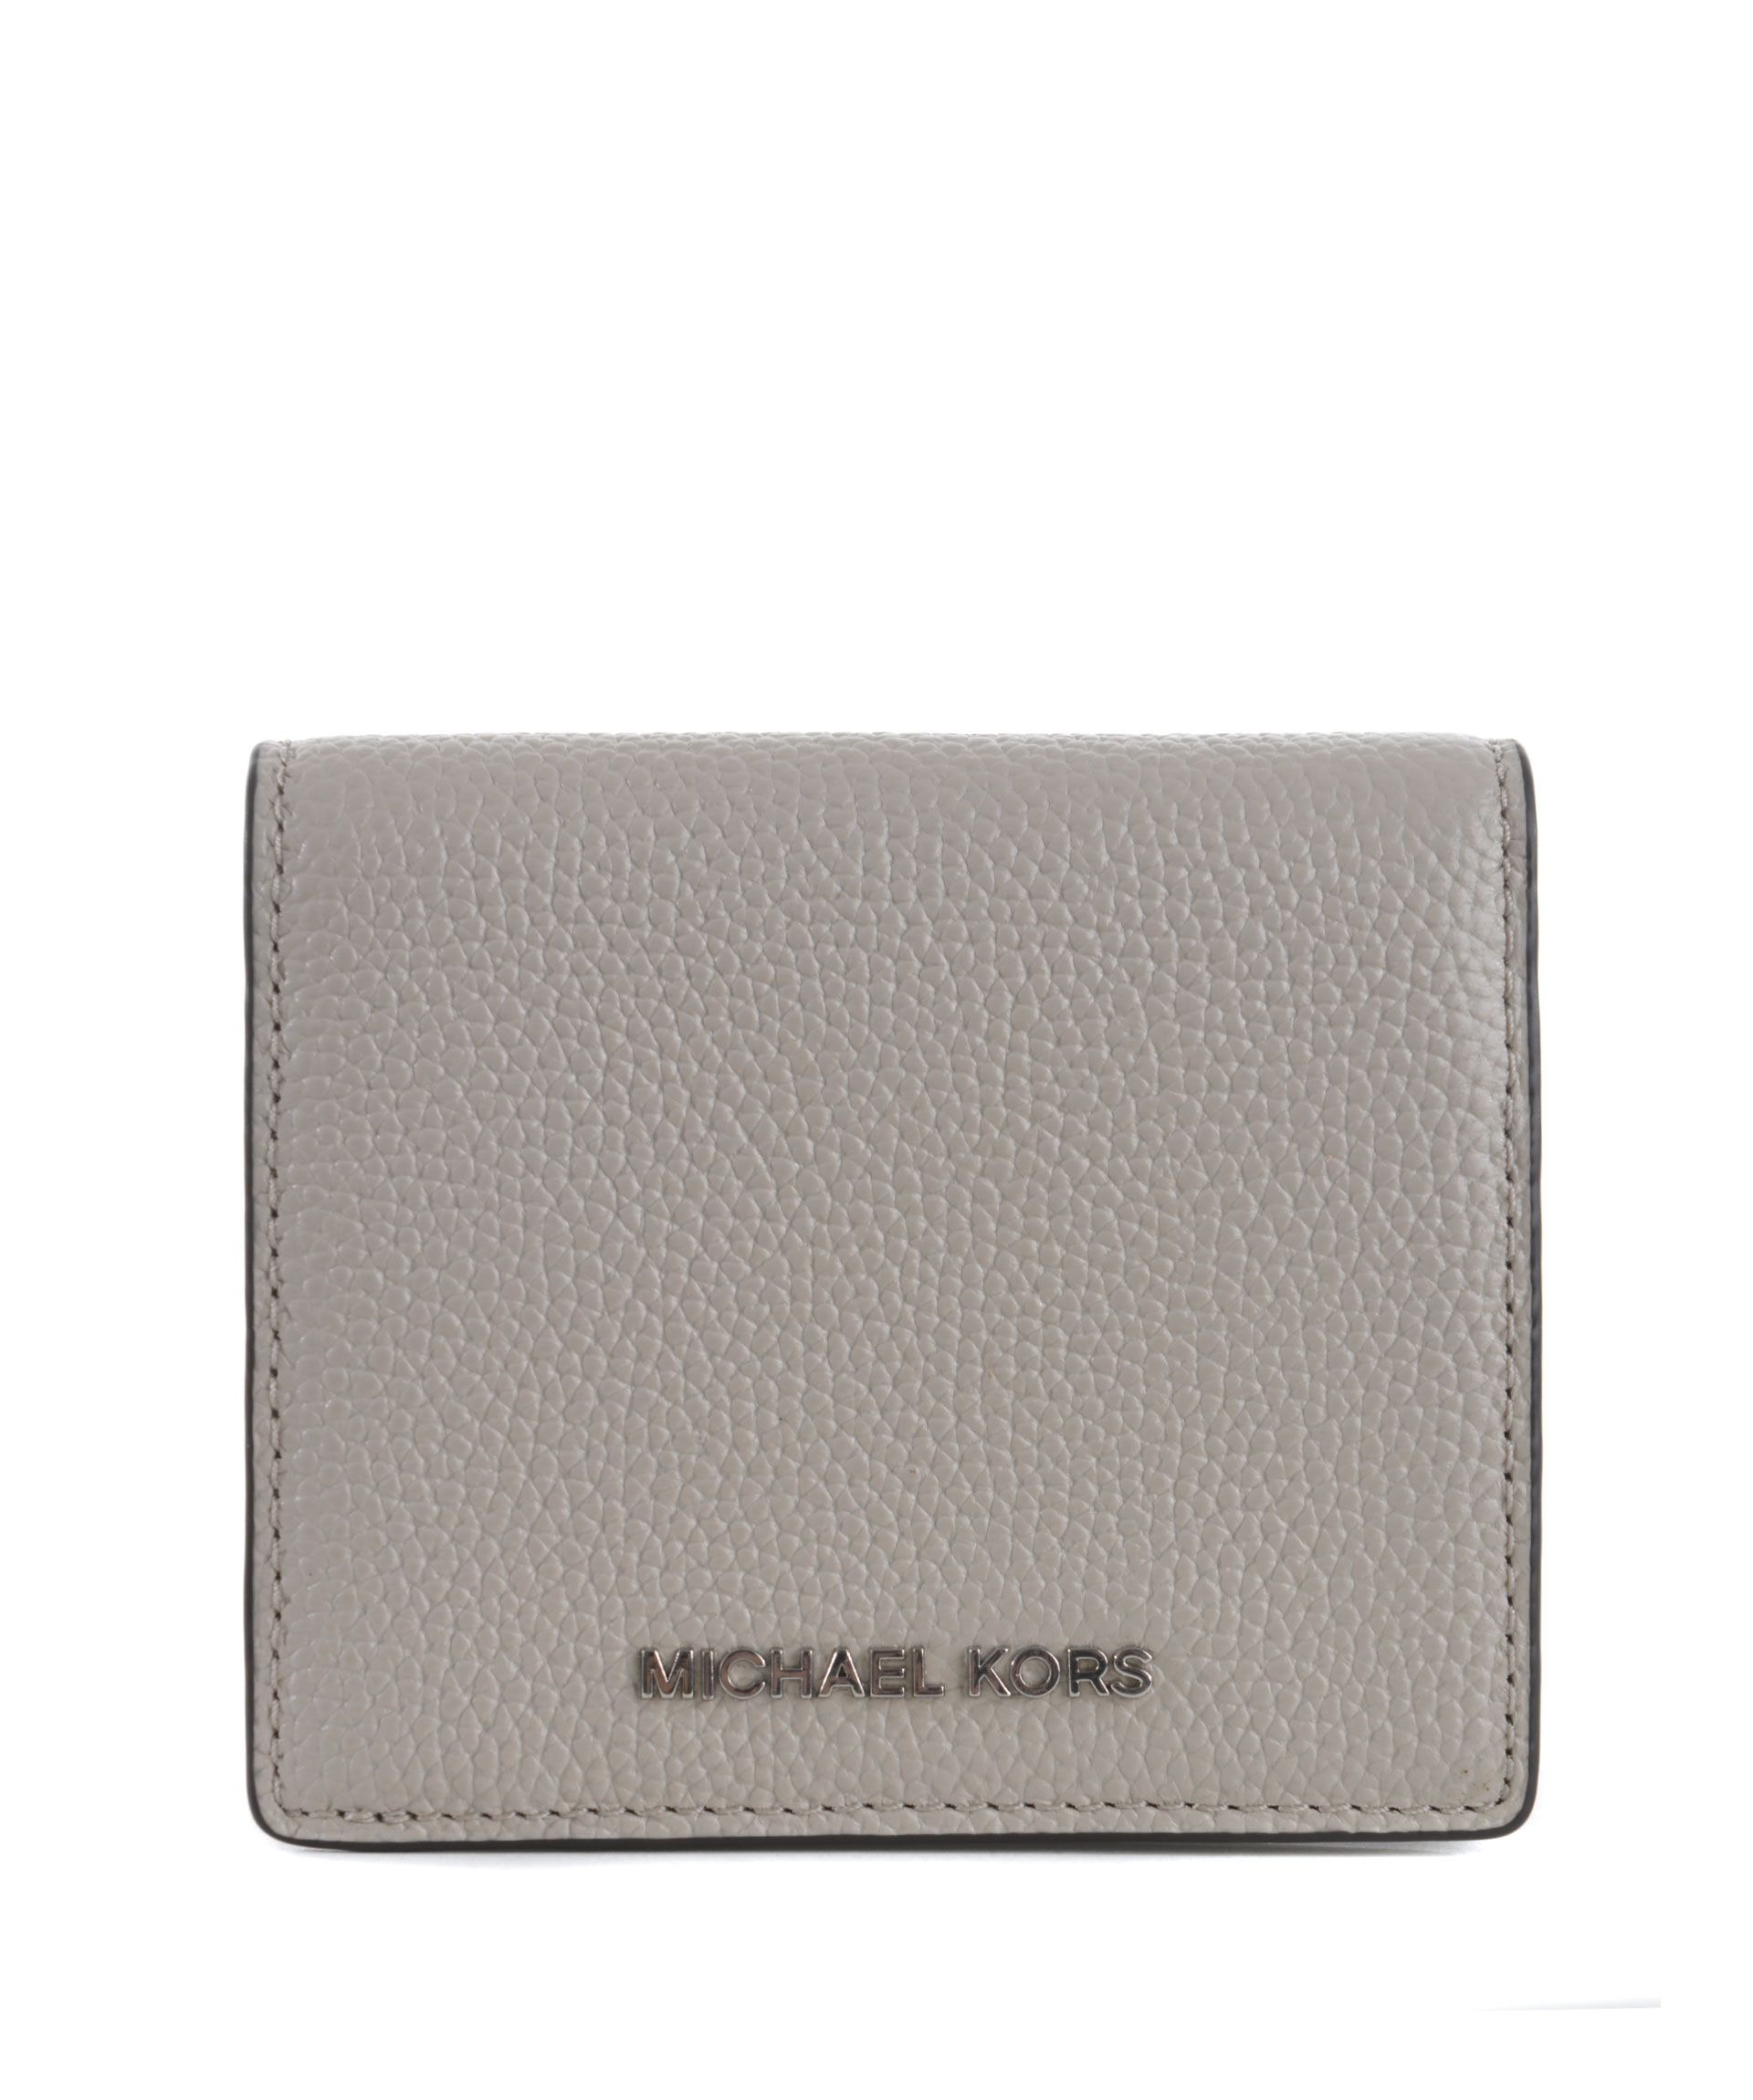 Michael Kors Mercer Card Holder